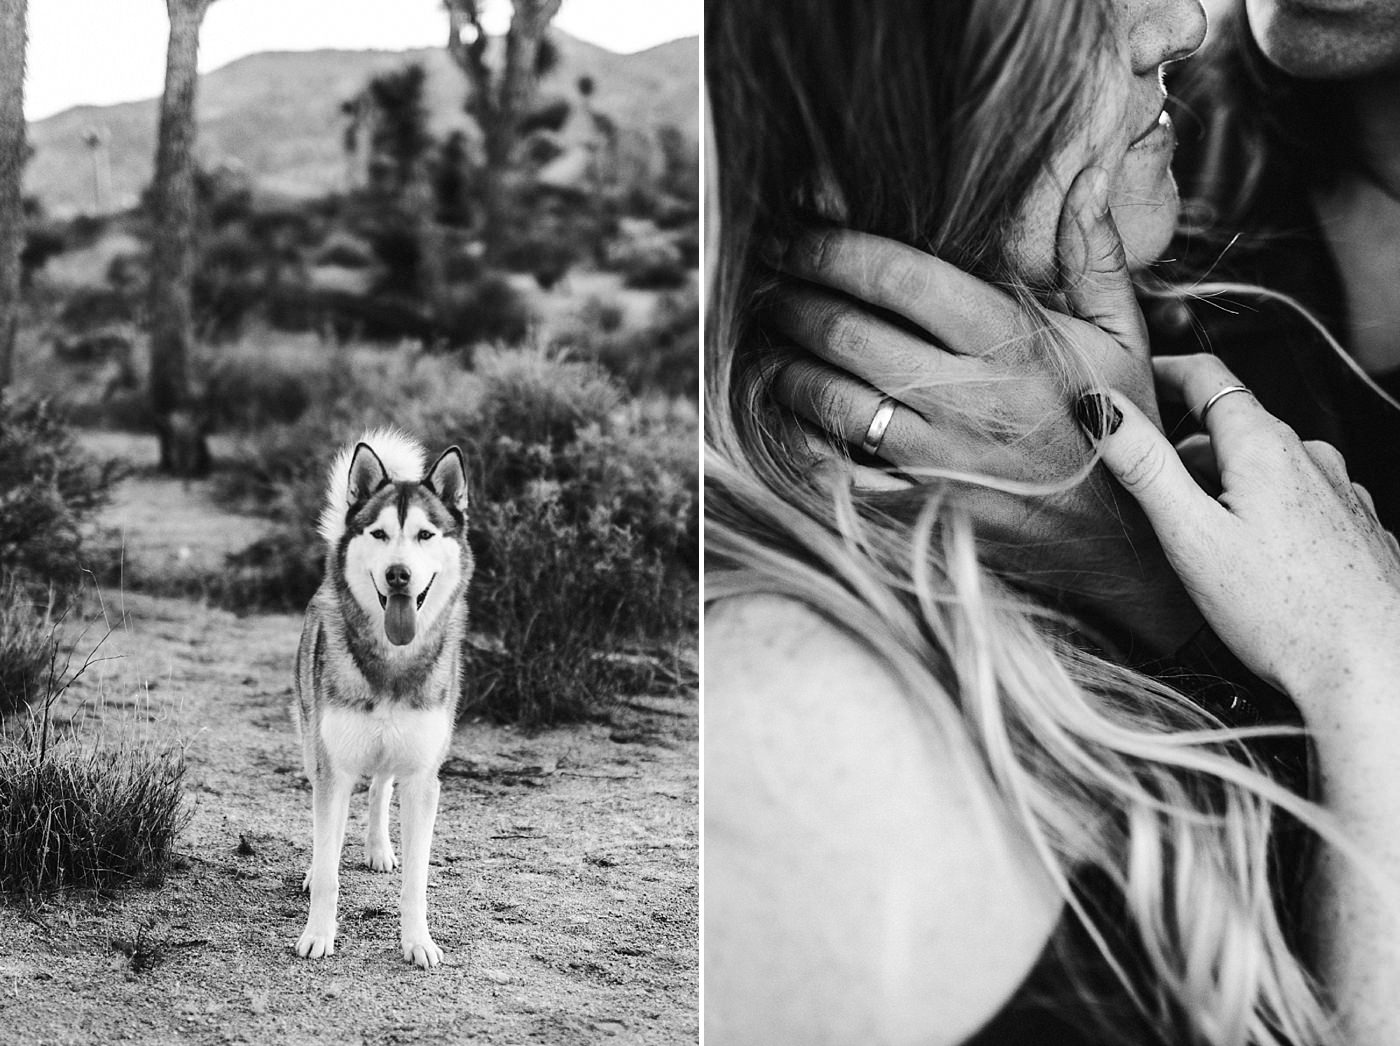 international-elopement-photographer_0180 Kinsey & Josh & Banjo Photographer in Joshuatreeinternational elopement photographer 0180